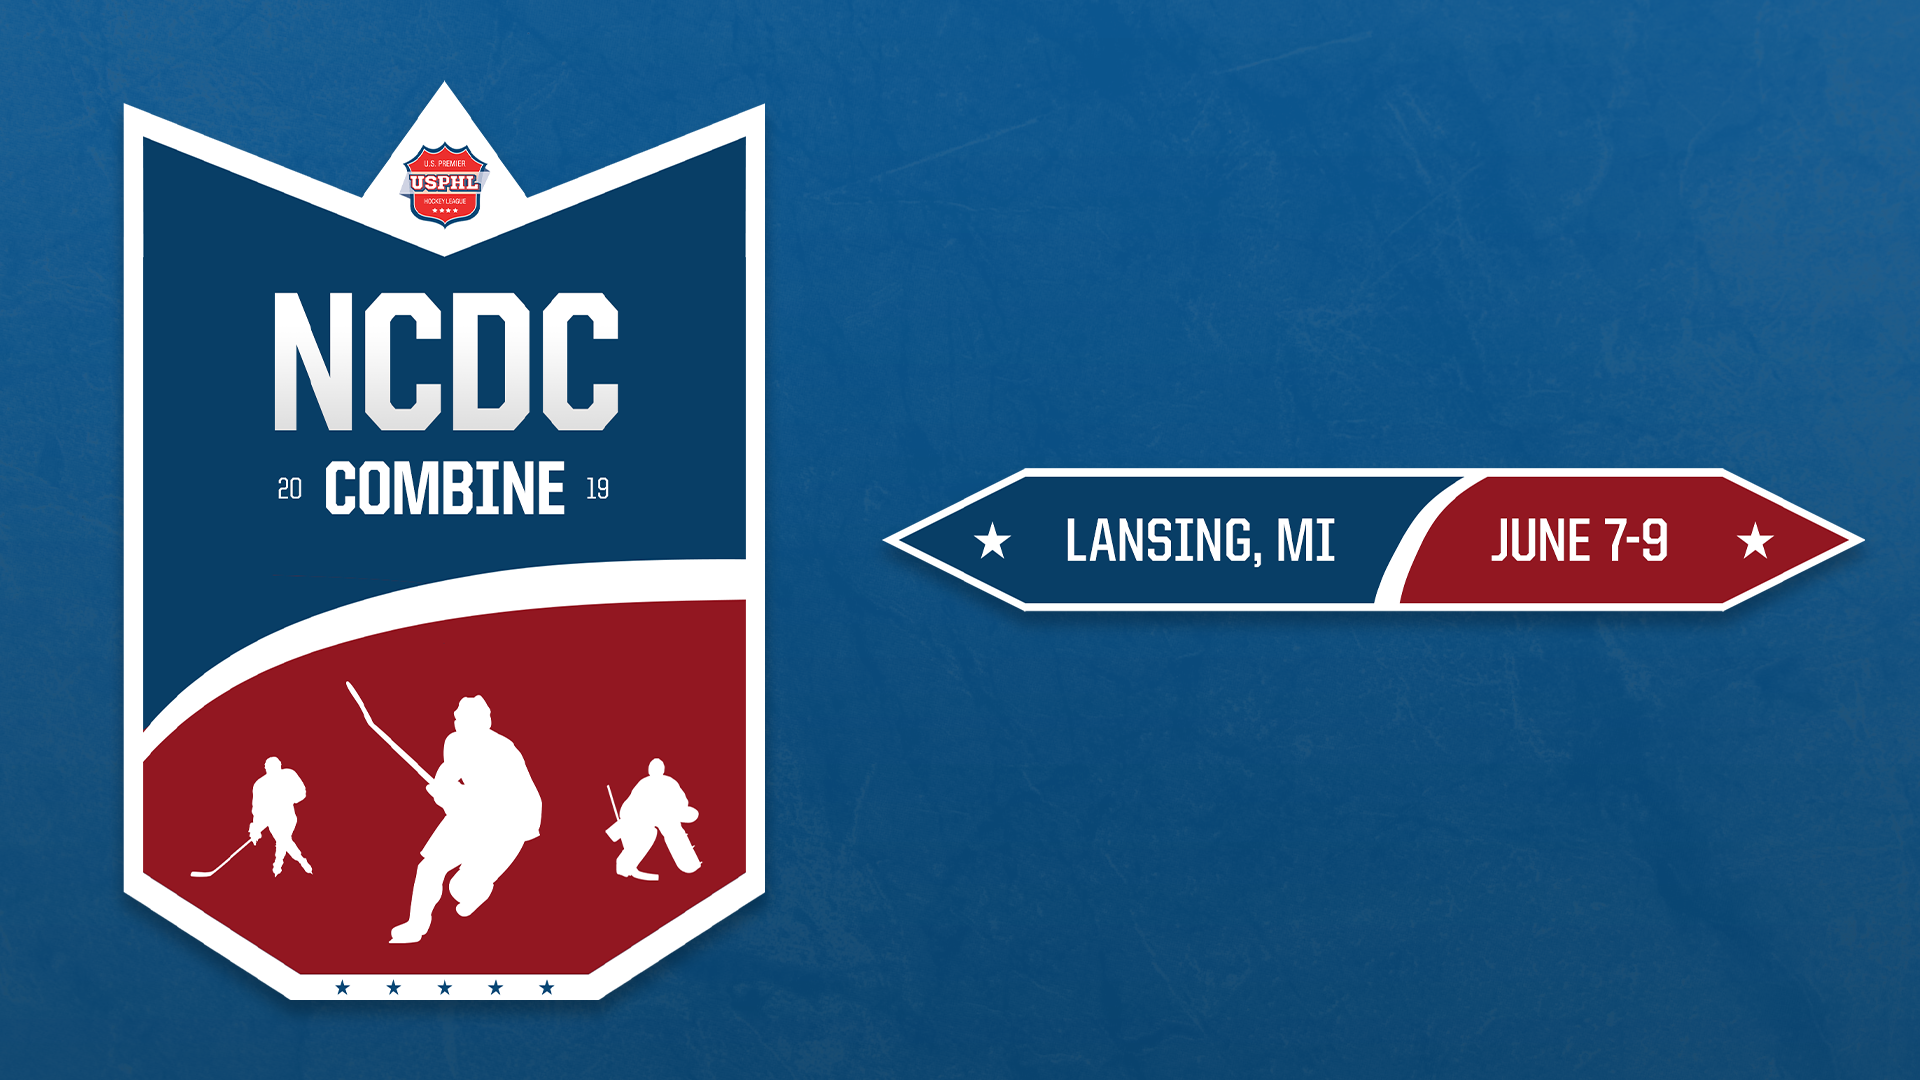 NCDC Midwest Combine coming to Lansing, Michigan from June 7-9